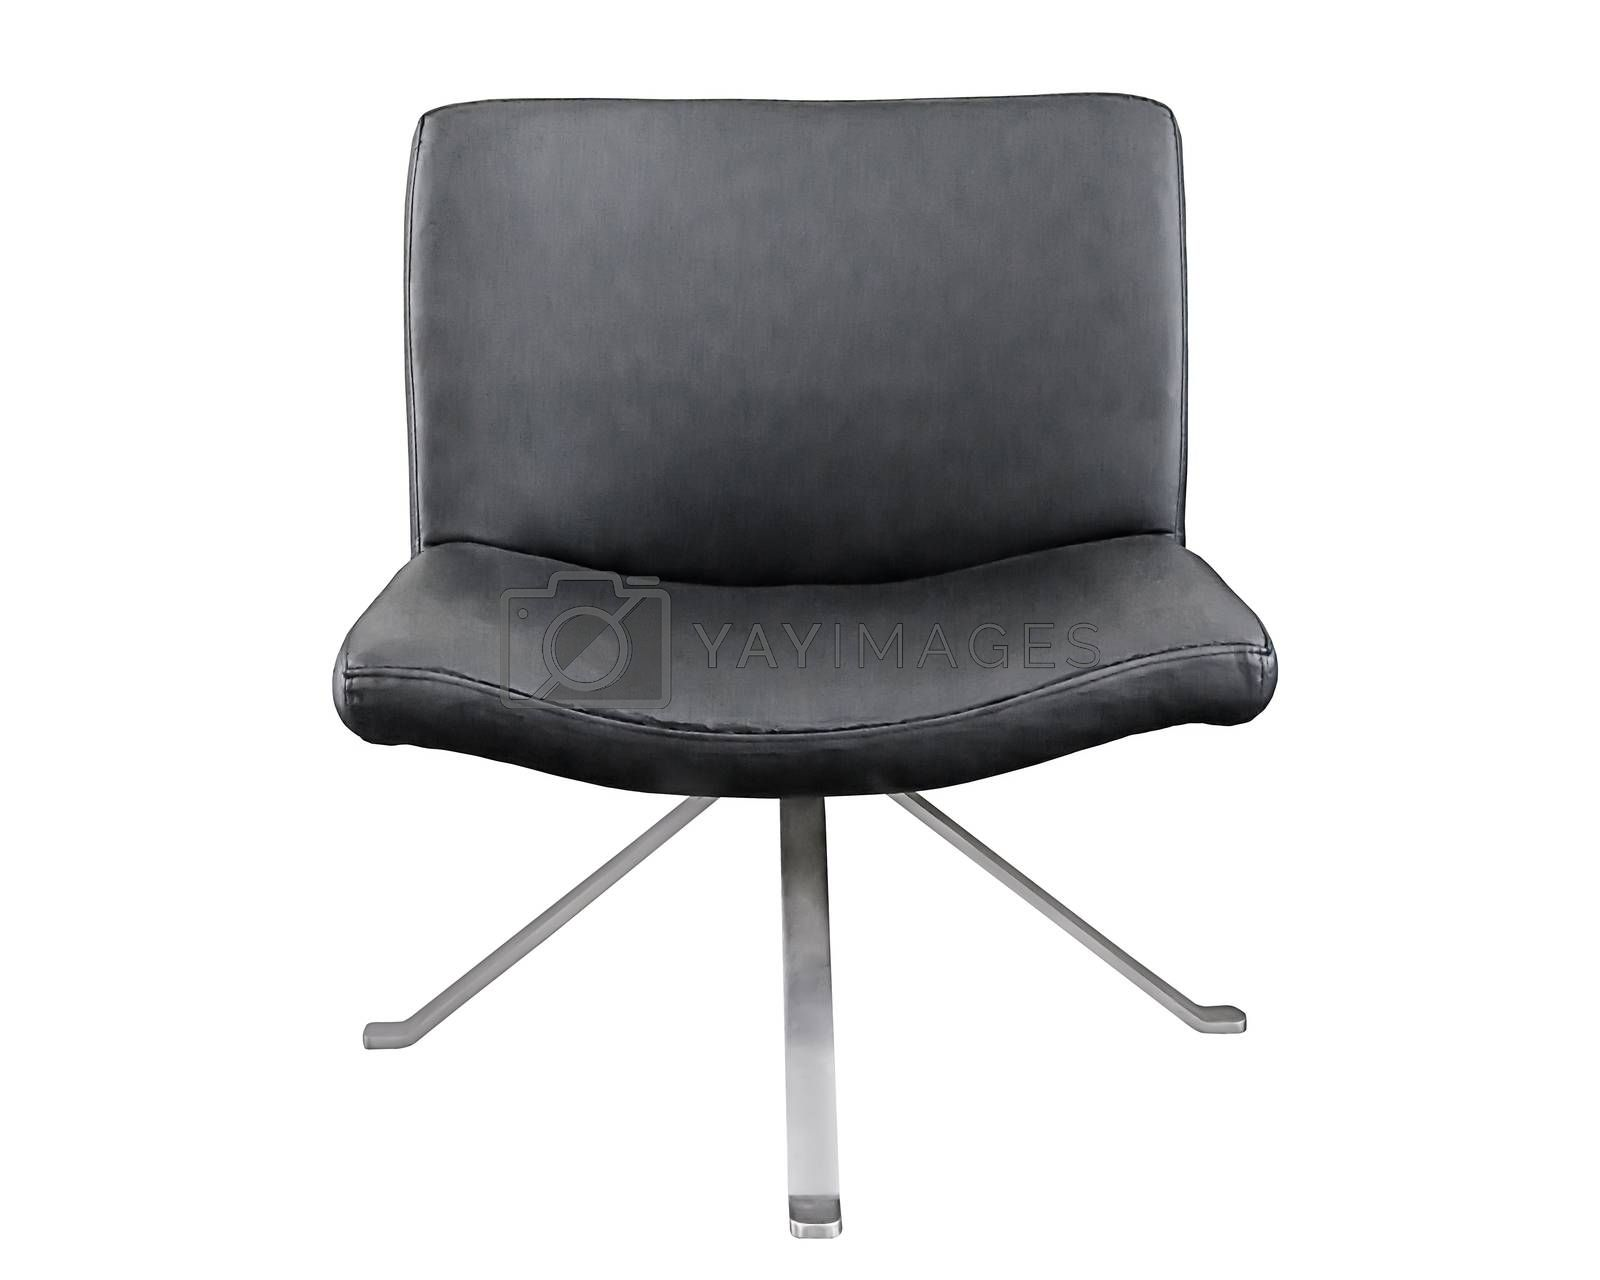 Royalty free image of Black leather office chair  by NuwatPhoto